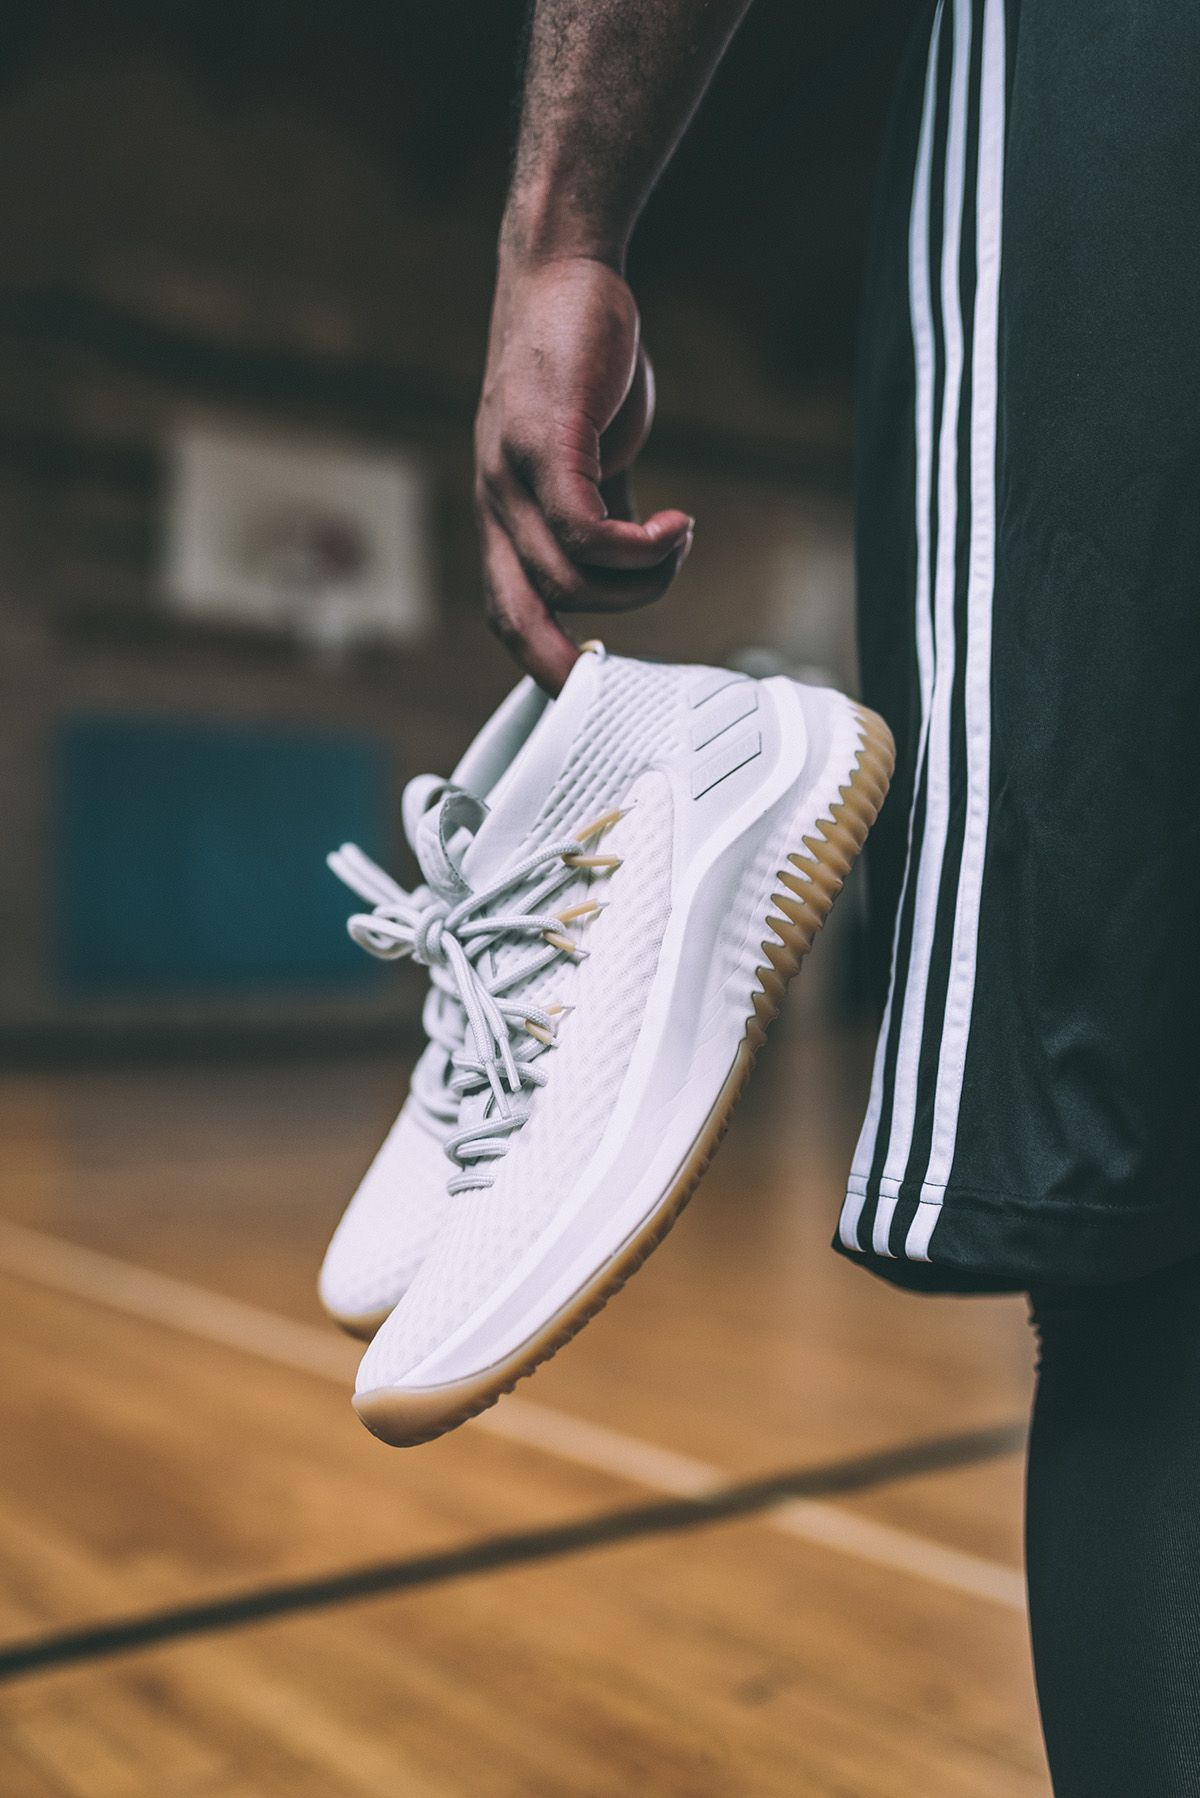 With NBA action set to start up soon, adidas Basketball have just announced  the sneaker that Damian Lillard will wear during the season, the Dame 4